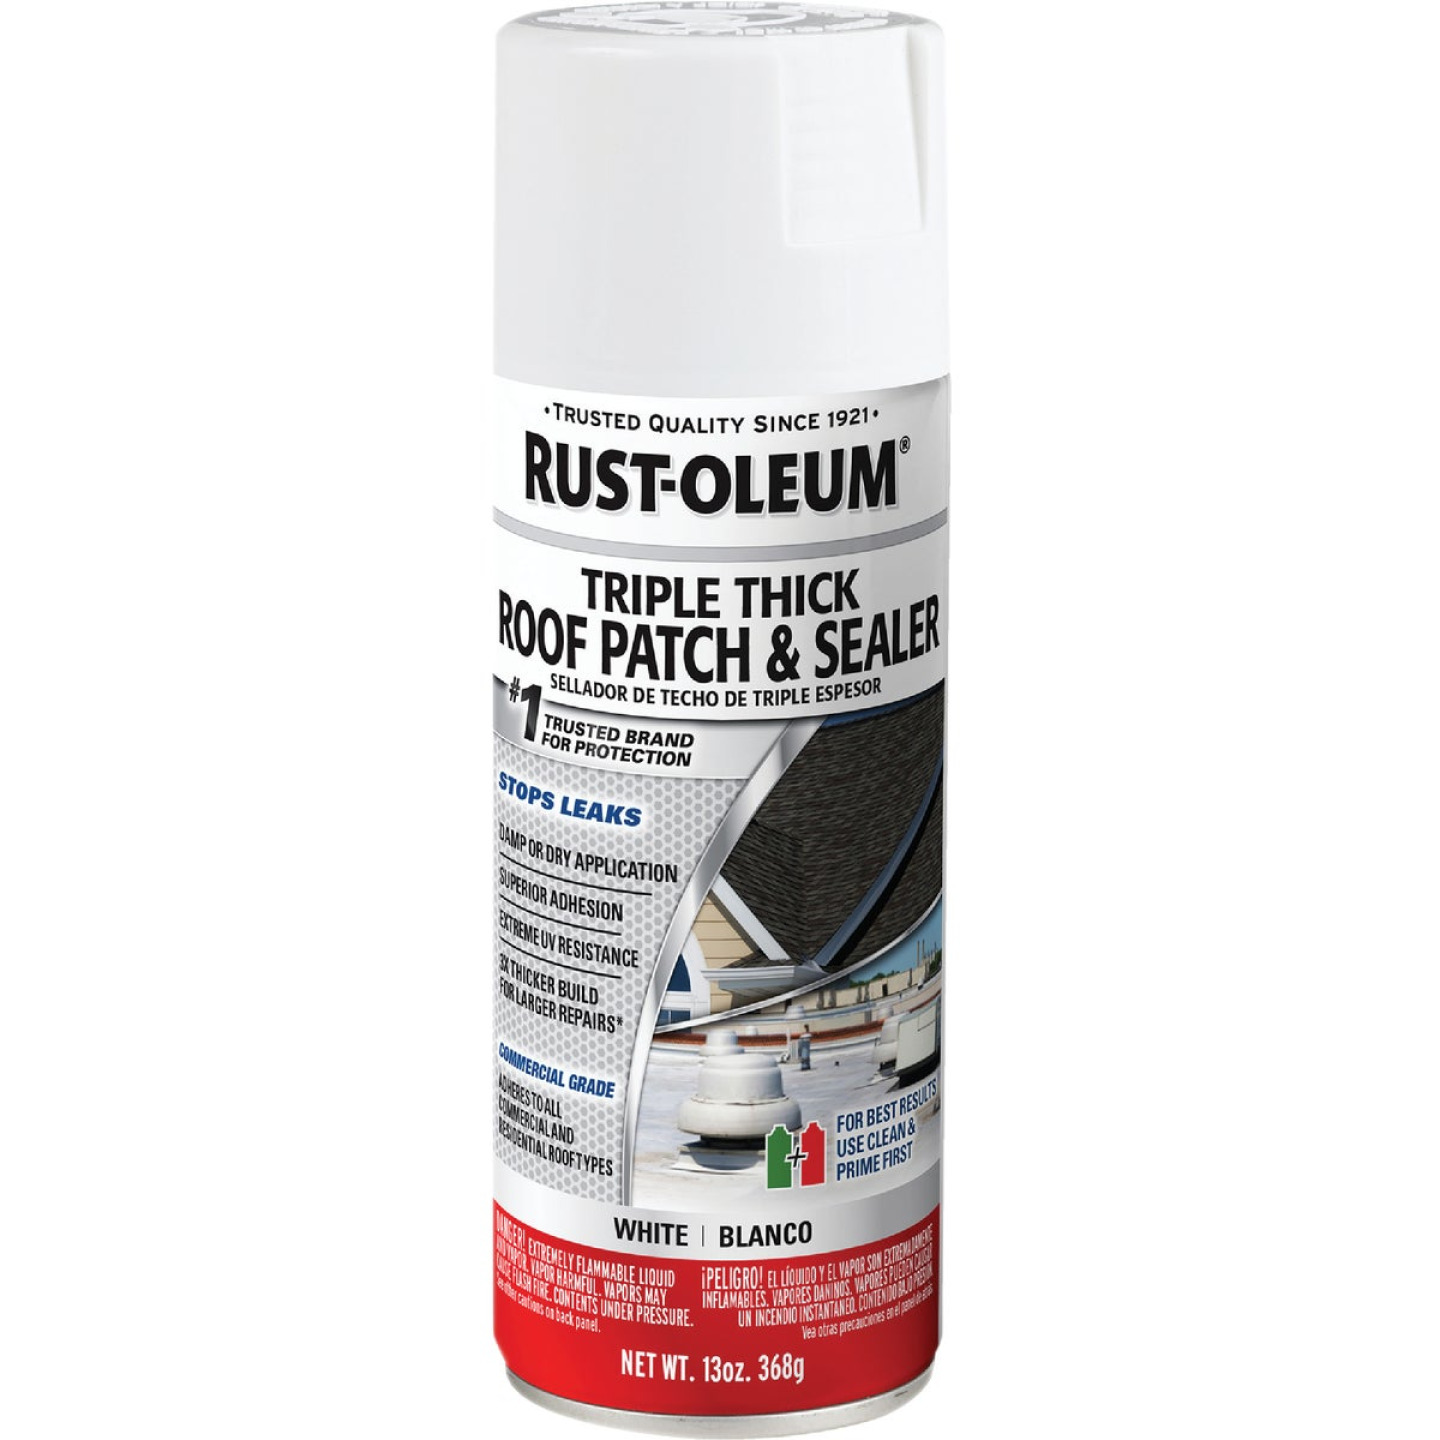 Rust-Oleum 13 Oz. Roofing Triple Thick Roof Patch & Sealer White Spray Image 1